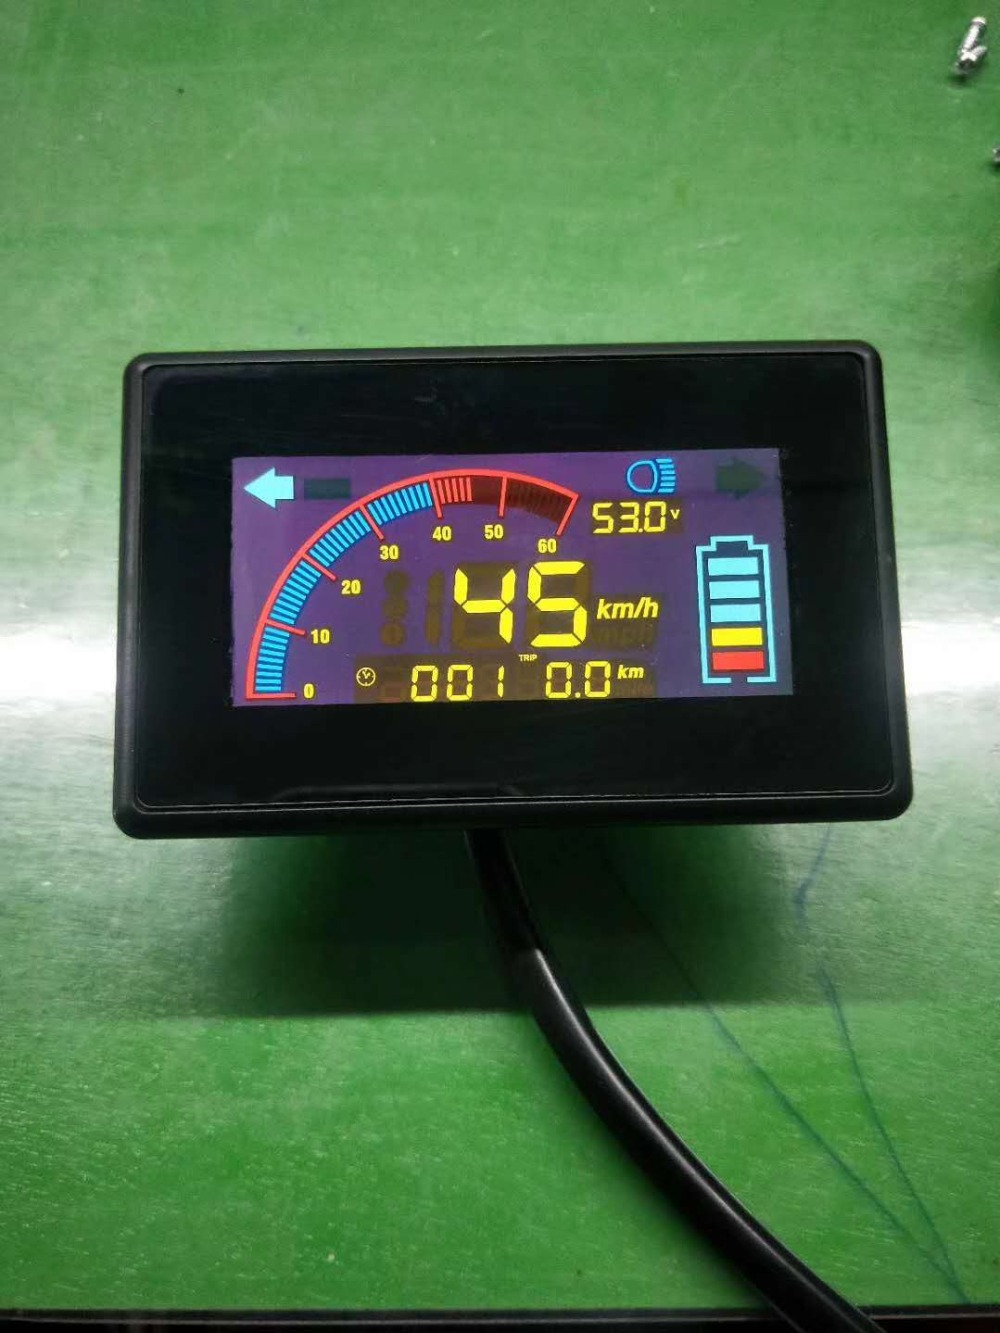 lithium battery bike display colored_201812283